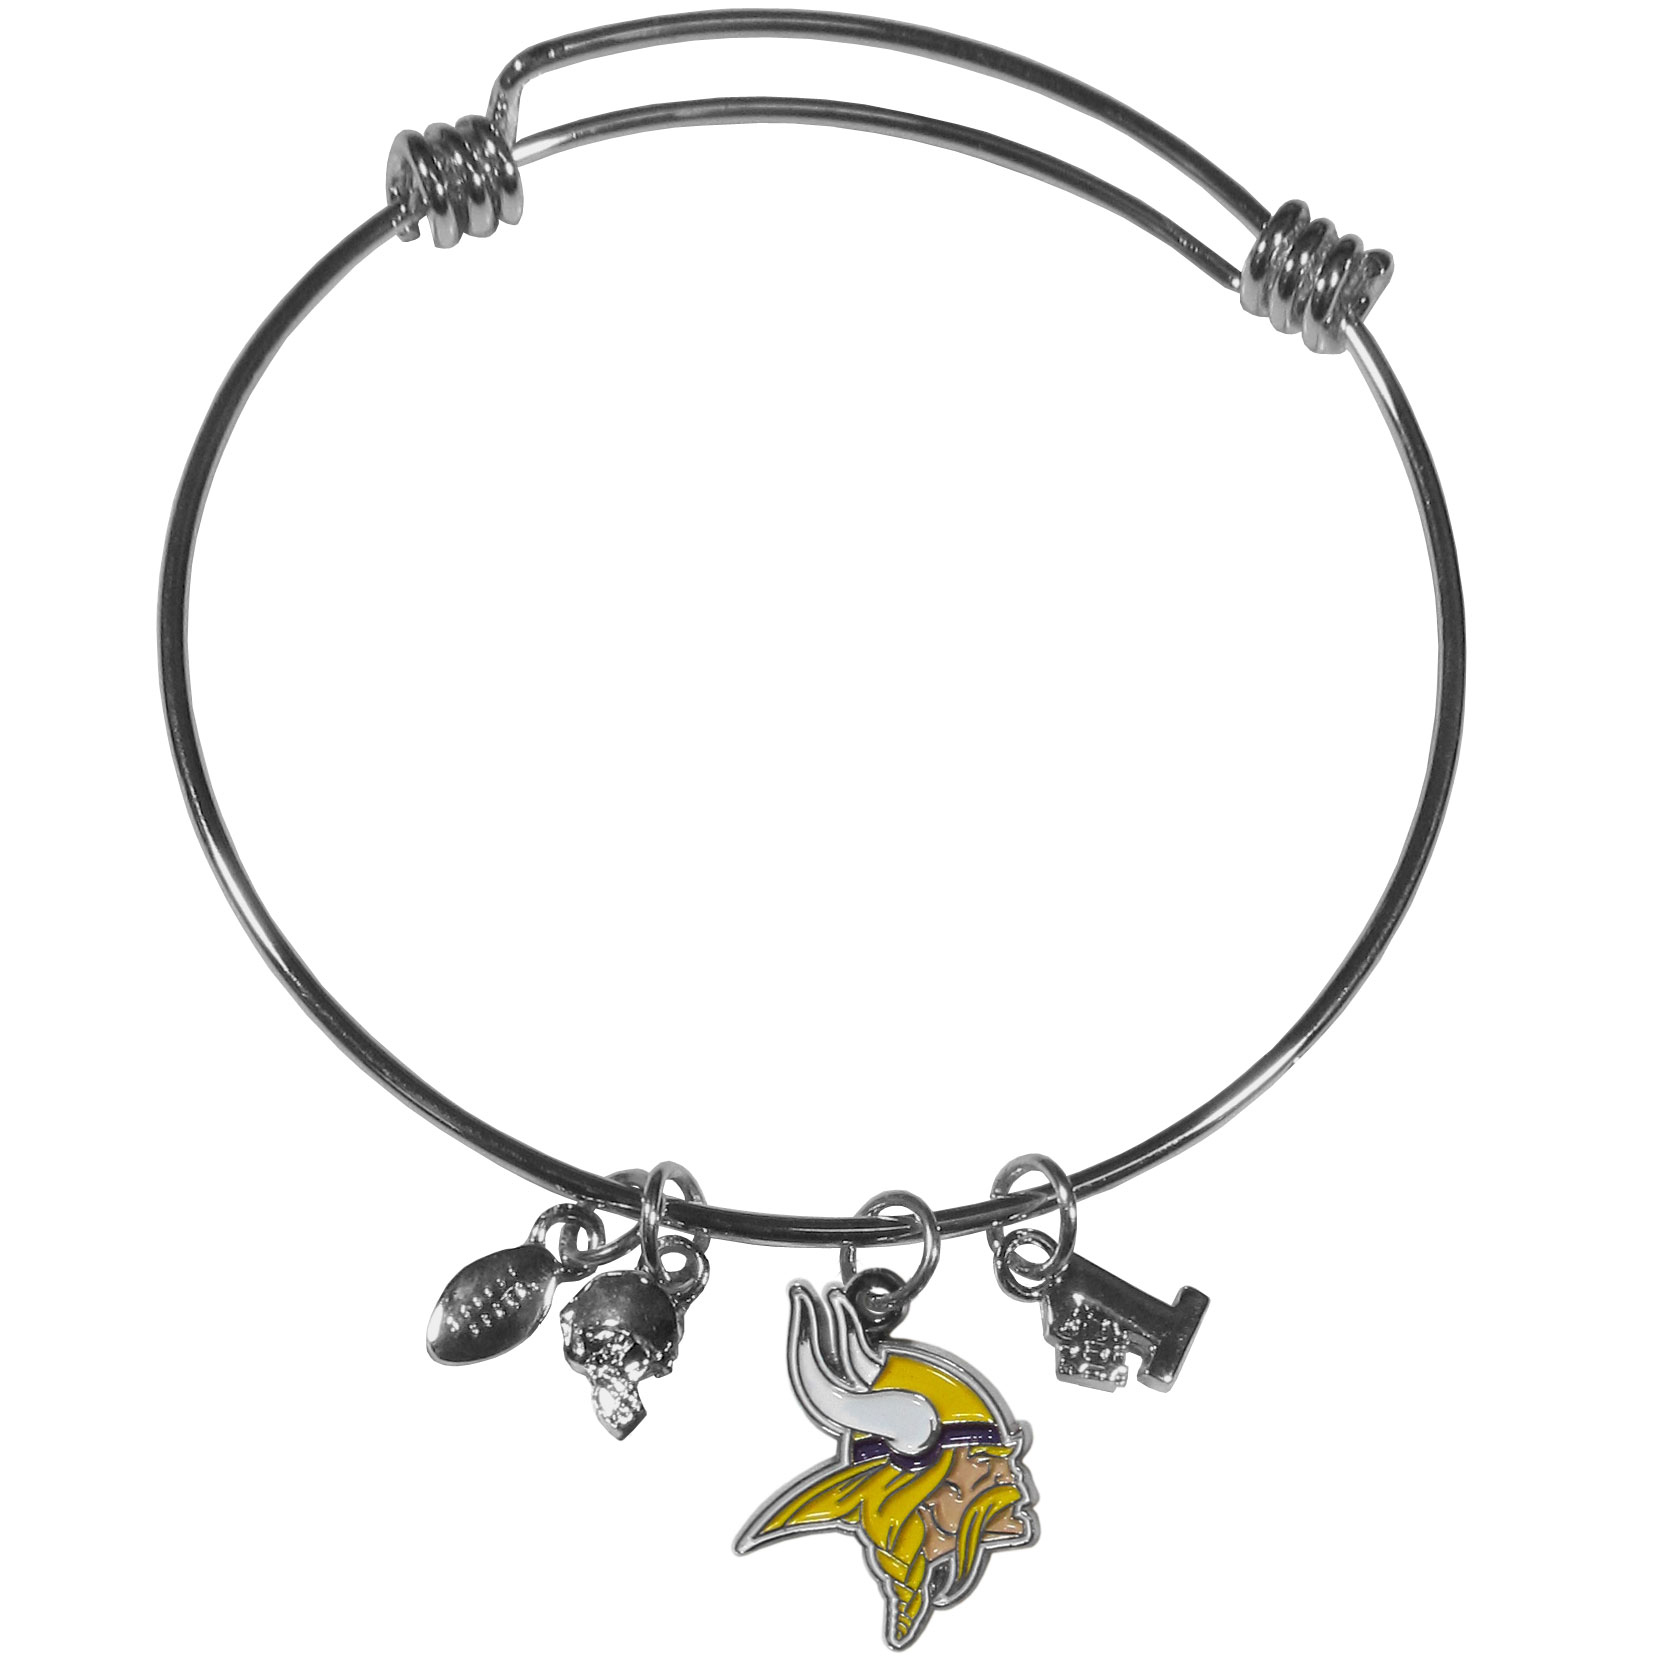 Minnesota Vikings Charm Bangle Bracelet - Adjustable wire bracelets are all the rage and this Minnesota Vikings bracelet matches the popular trend with your beloved team. The bracelet features 4 charms in total, each feature exceptional detail and the team charm has enameled team colors.